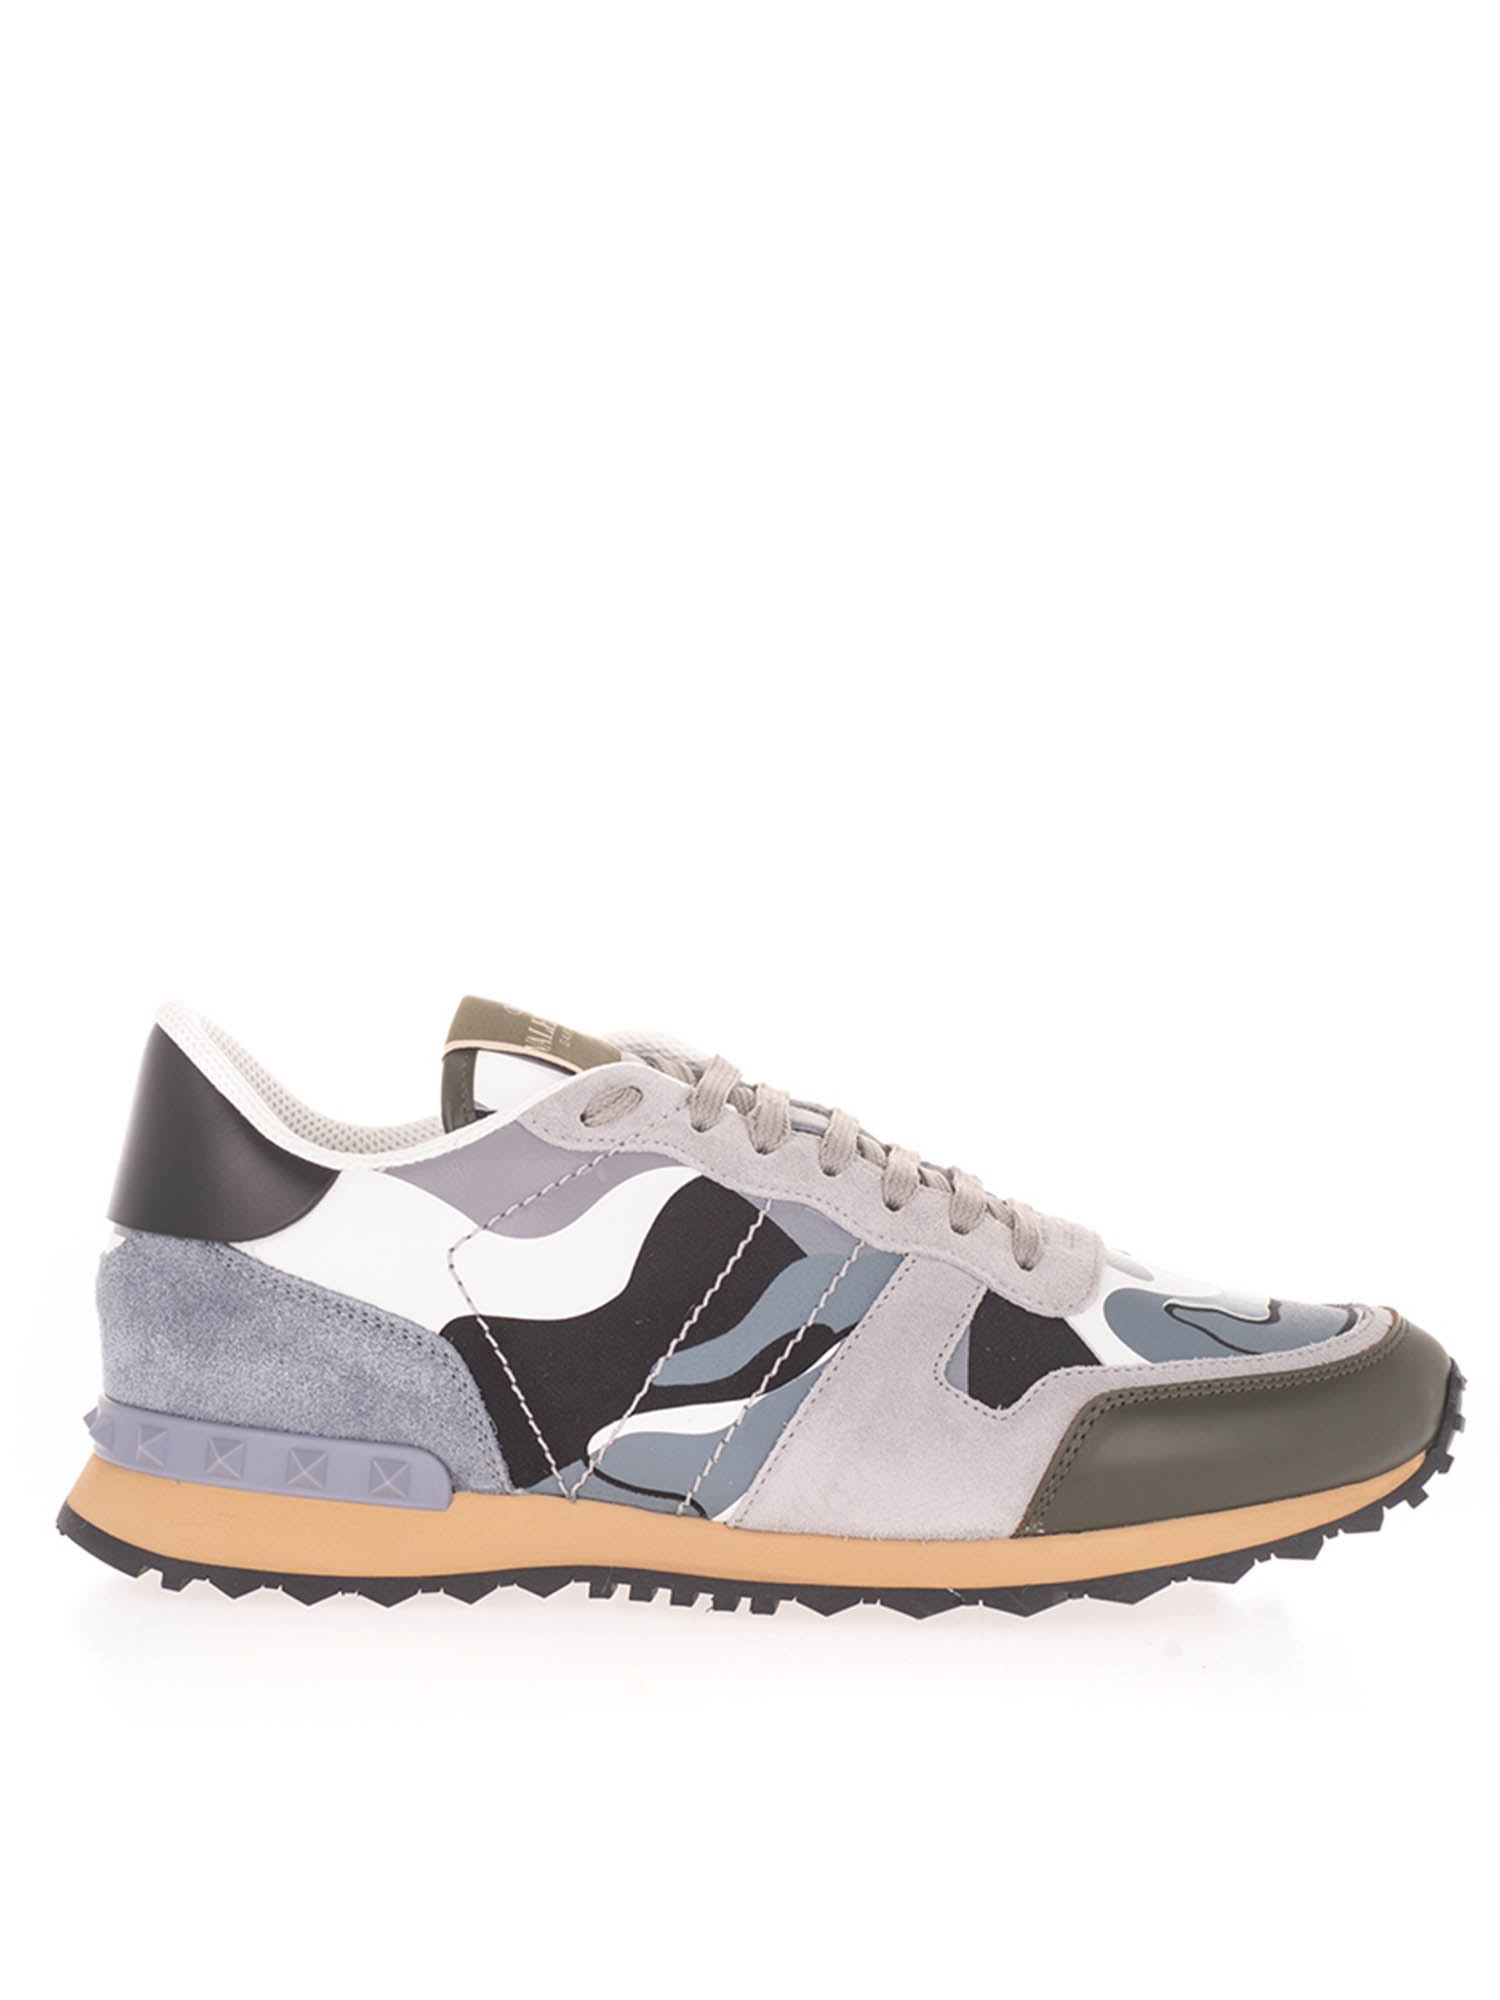 Valentino ROCKRUNNER CAMOUFLAGE SNEAKERS IN GRAY